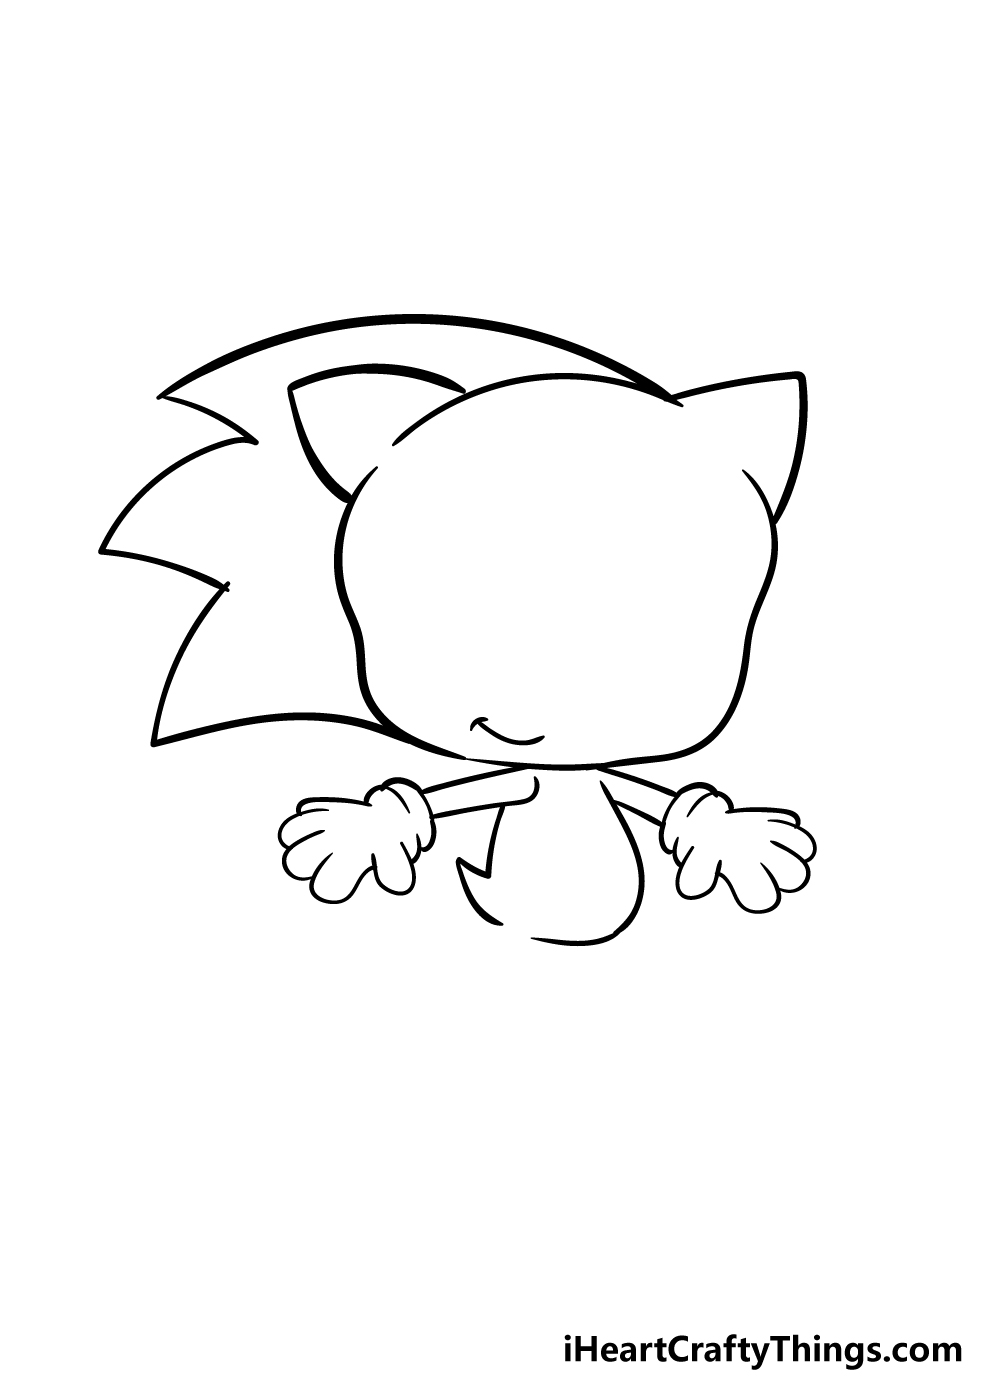 sonic drawing step 5